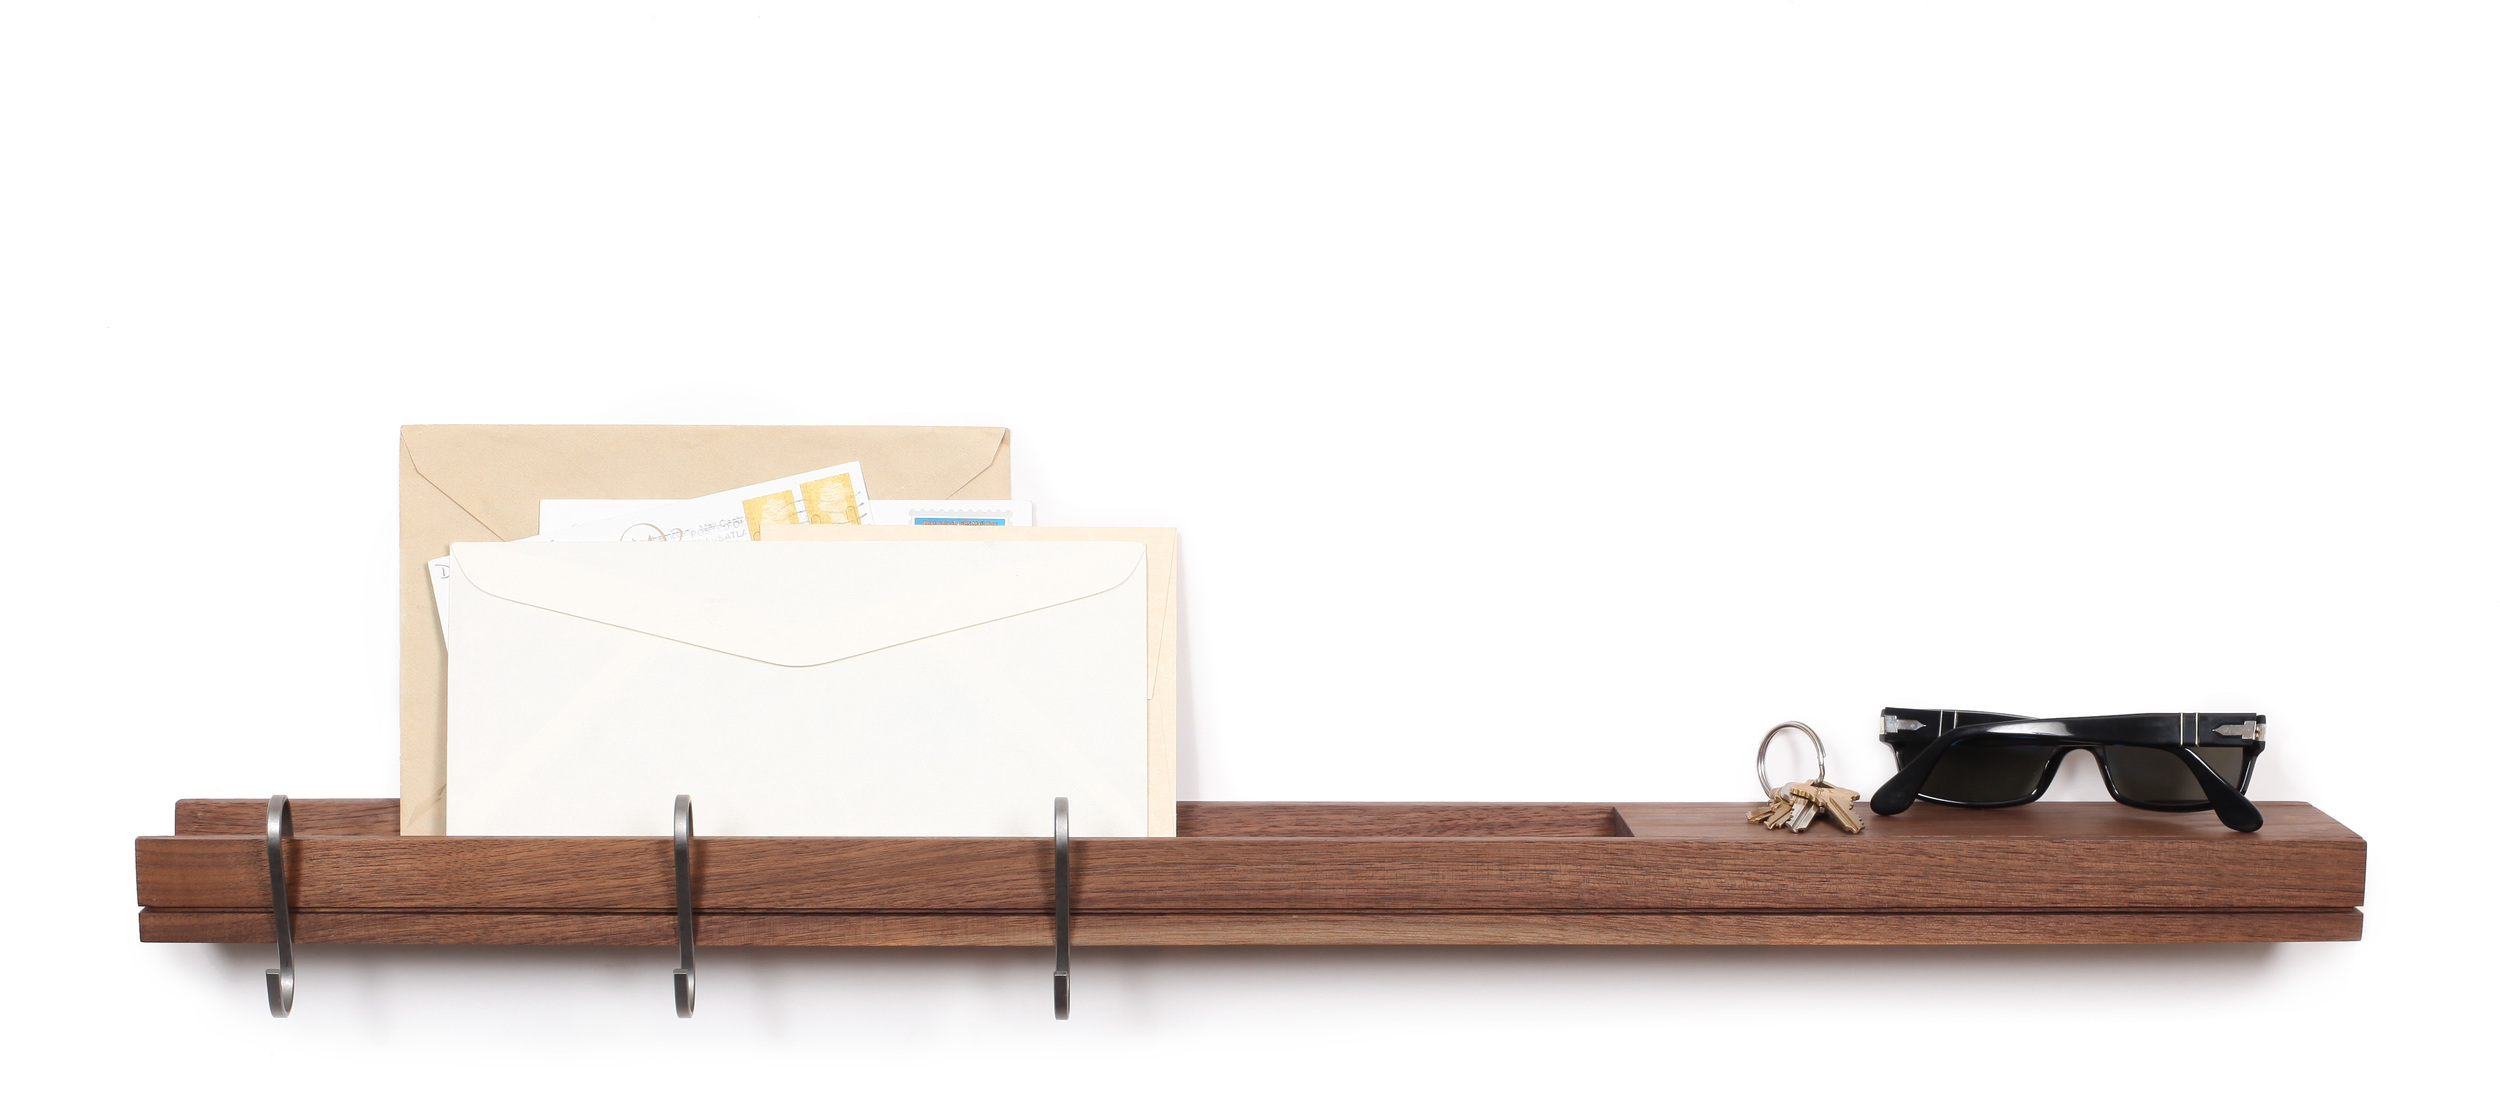 SINGULAR wall console floating entry shelf and coatrack